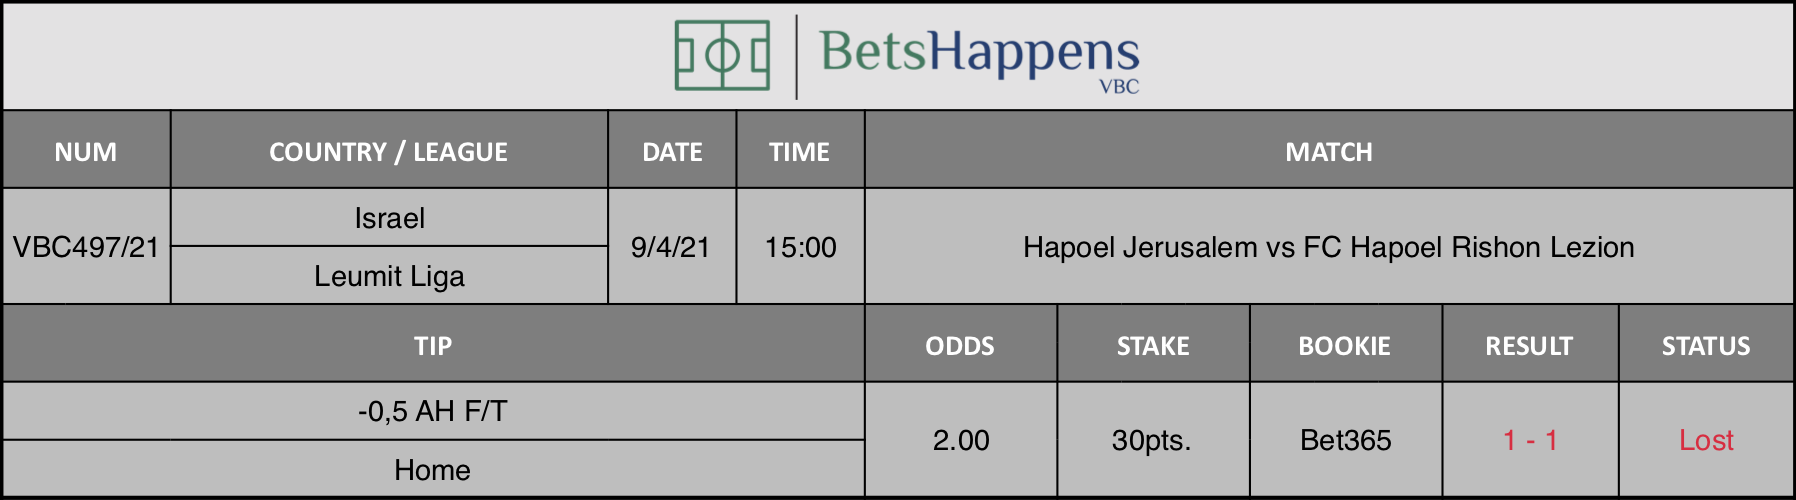 Results of our tip for the Hapoel Jerusalem vs FC Hapoel Rishon Lezion match where -0,5 AH F/T Home is recommended.